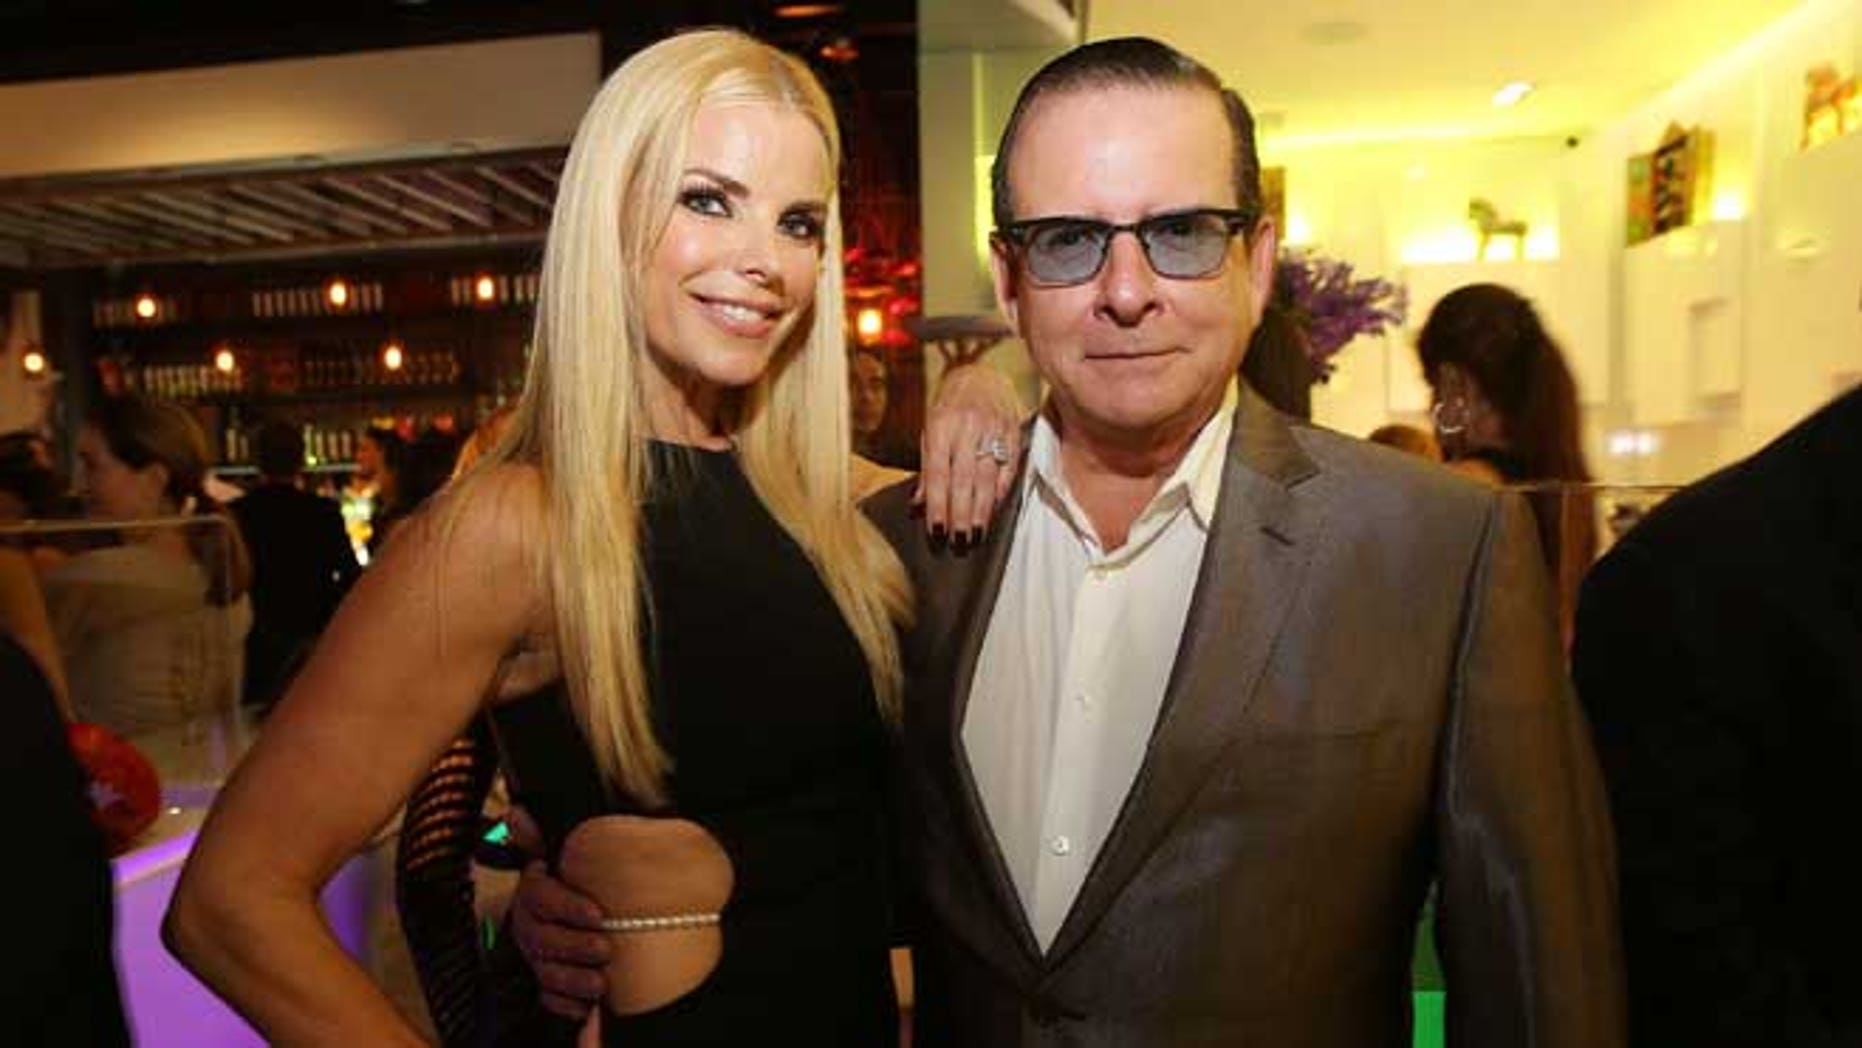 MIAMI, FL - OCTOBER 24: Alexia Echevarria and Herman Echevarria attend Private Opening Reception for CVI.CHE 105 South Beach on October 24, 2014 in Miami, Florida. (Photo by Aaron Davidson/Getty Images for CVI.CHE 105)